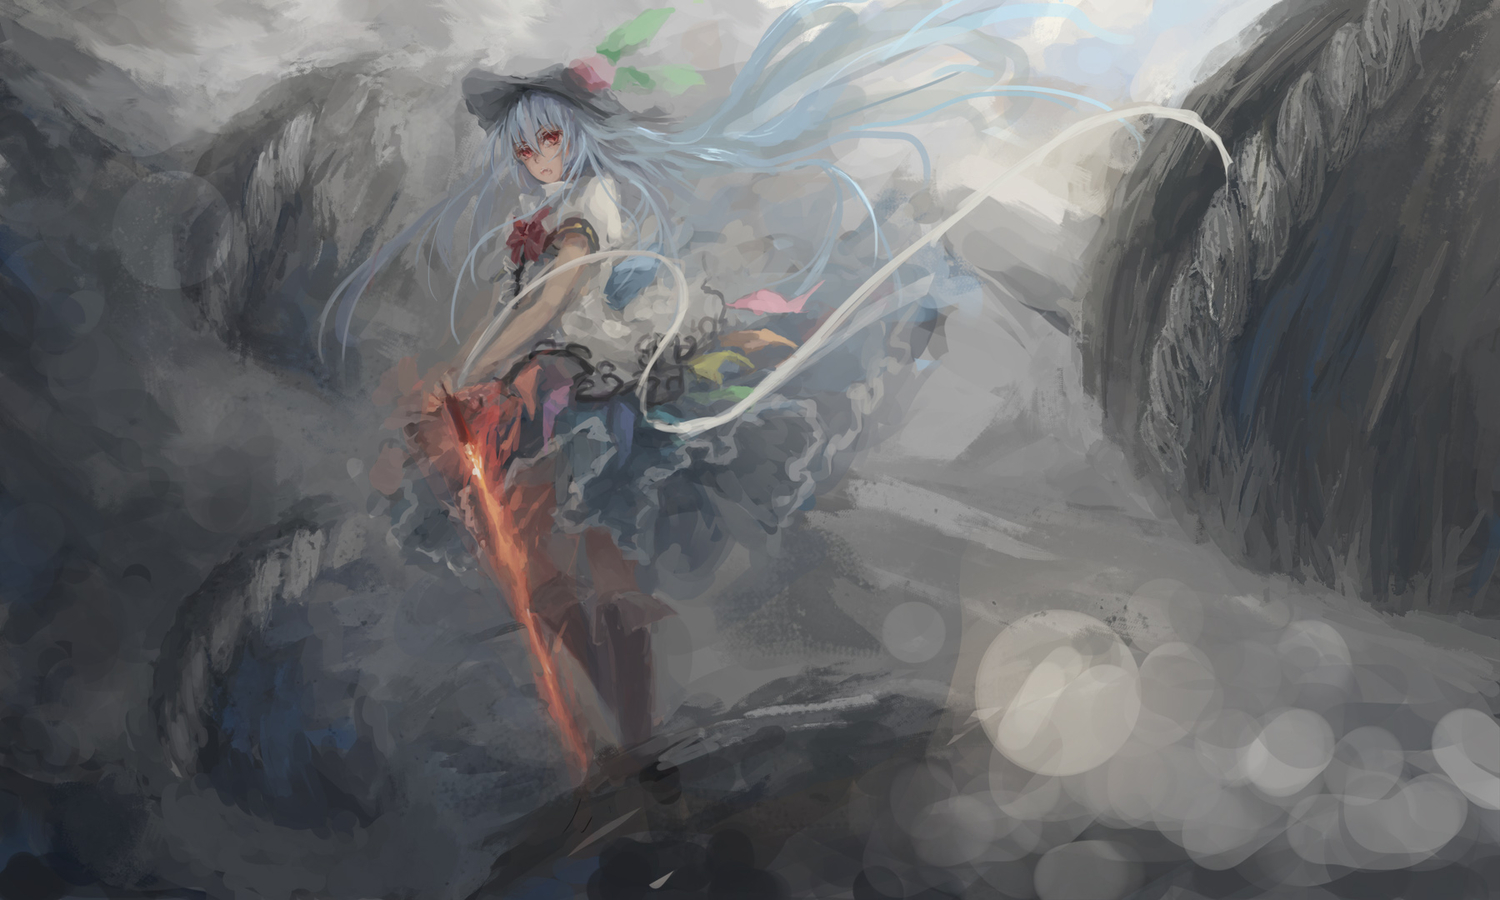 hinanawi_tenshi long_hair sword touhou weapon zatsuon